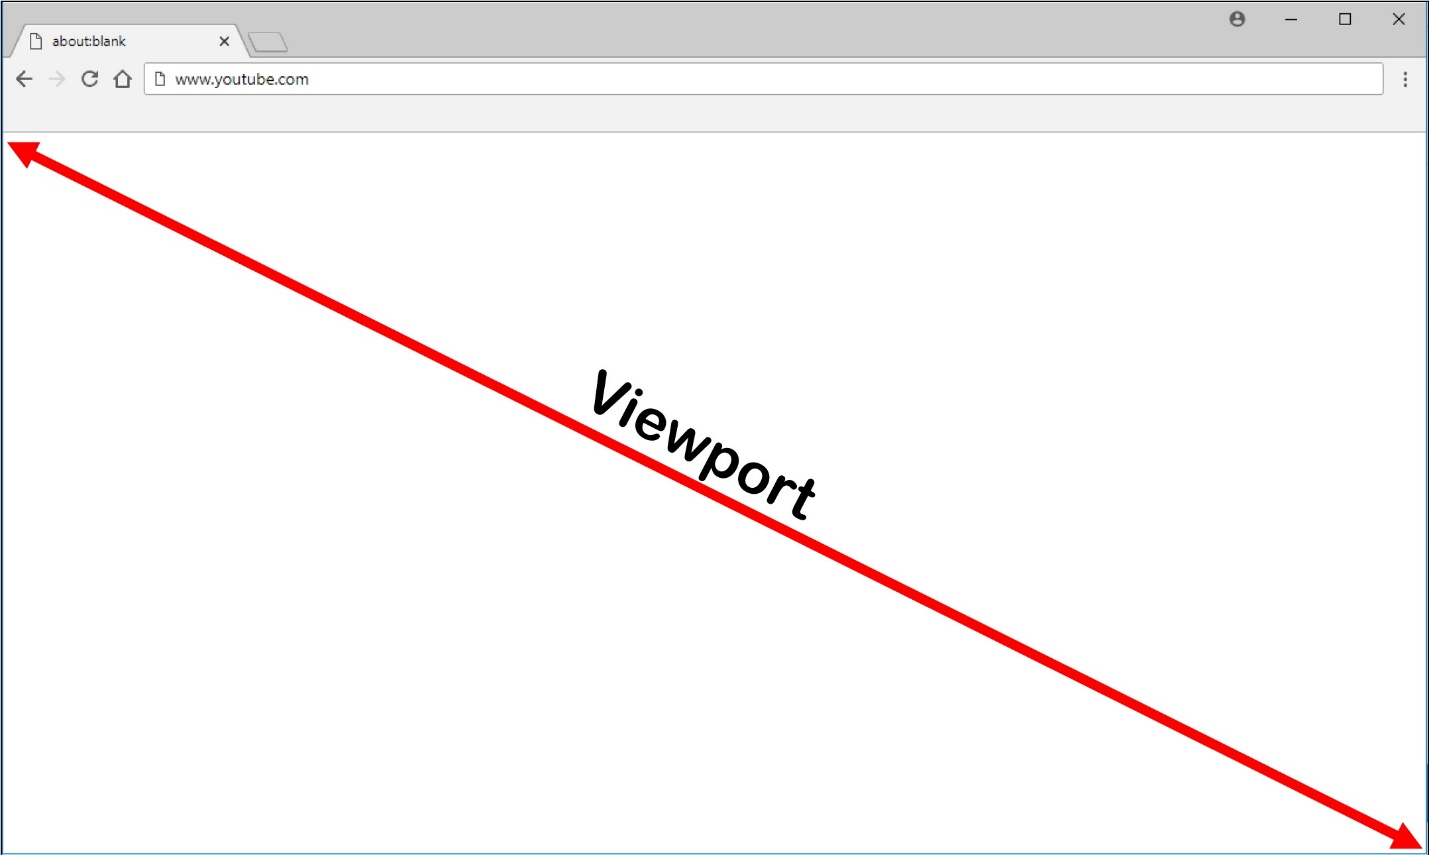 Image of viewport